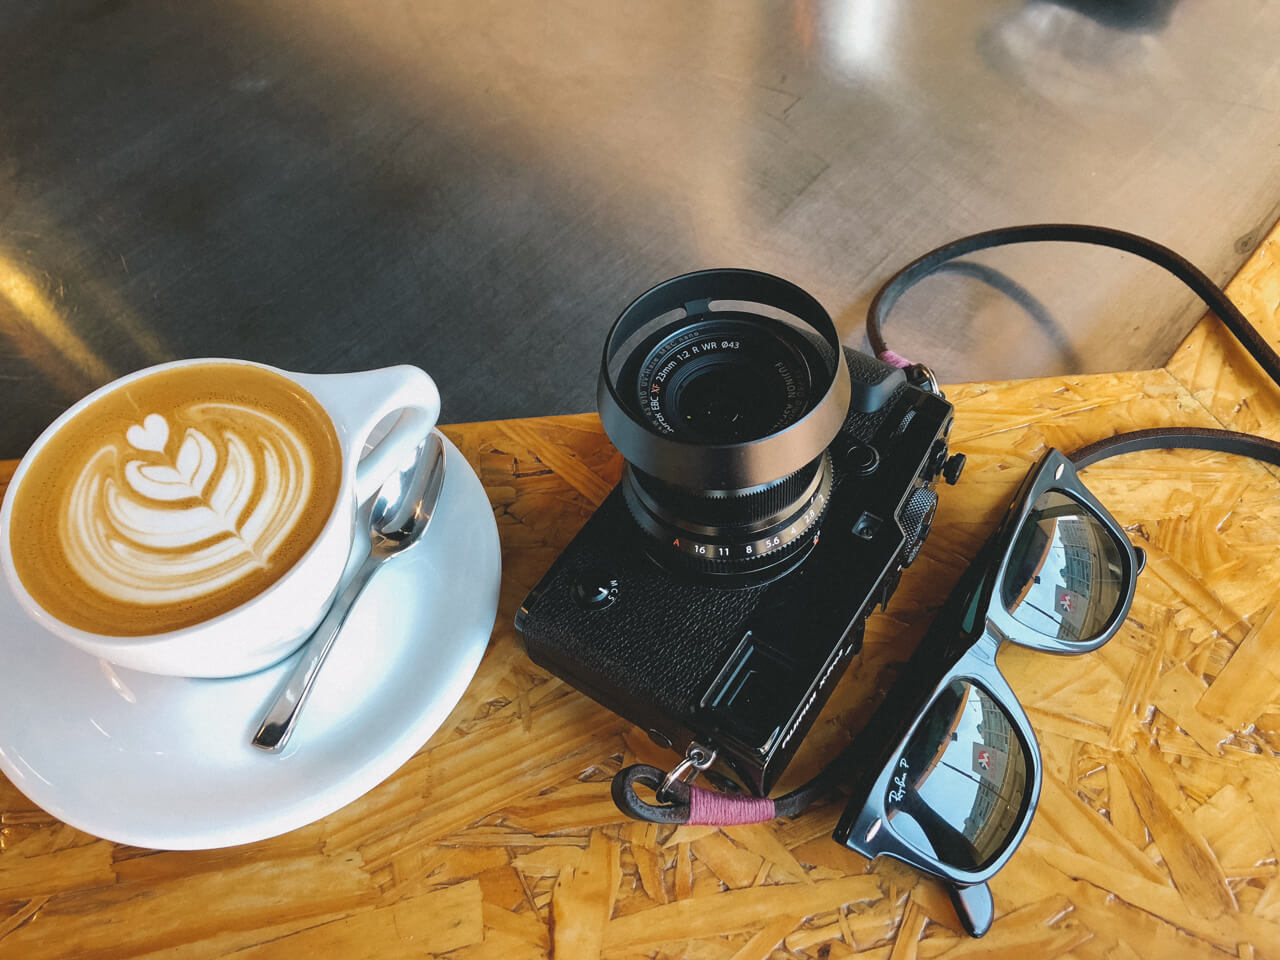 Switching from Leica M10 to Fujifilm X-Pro2